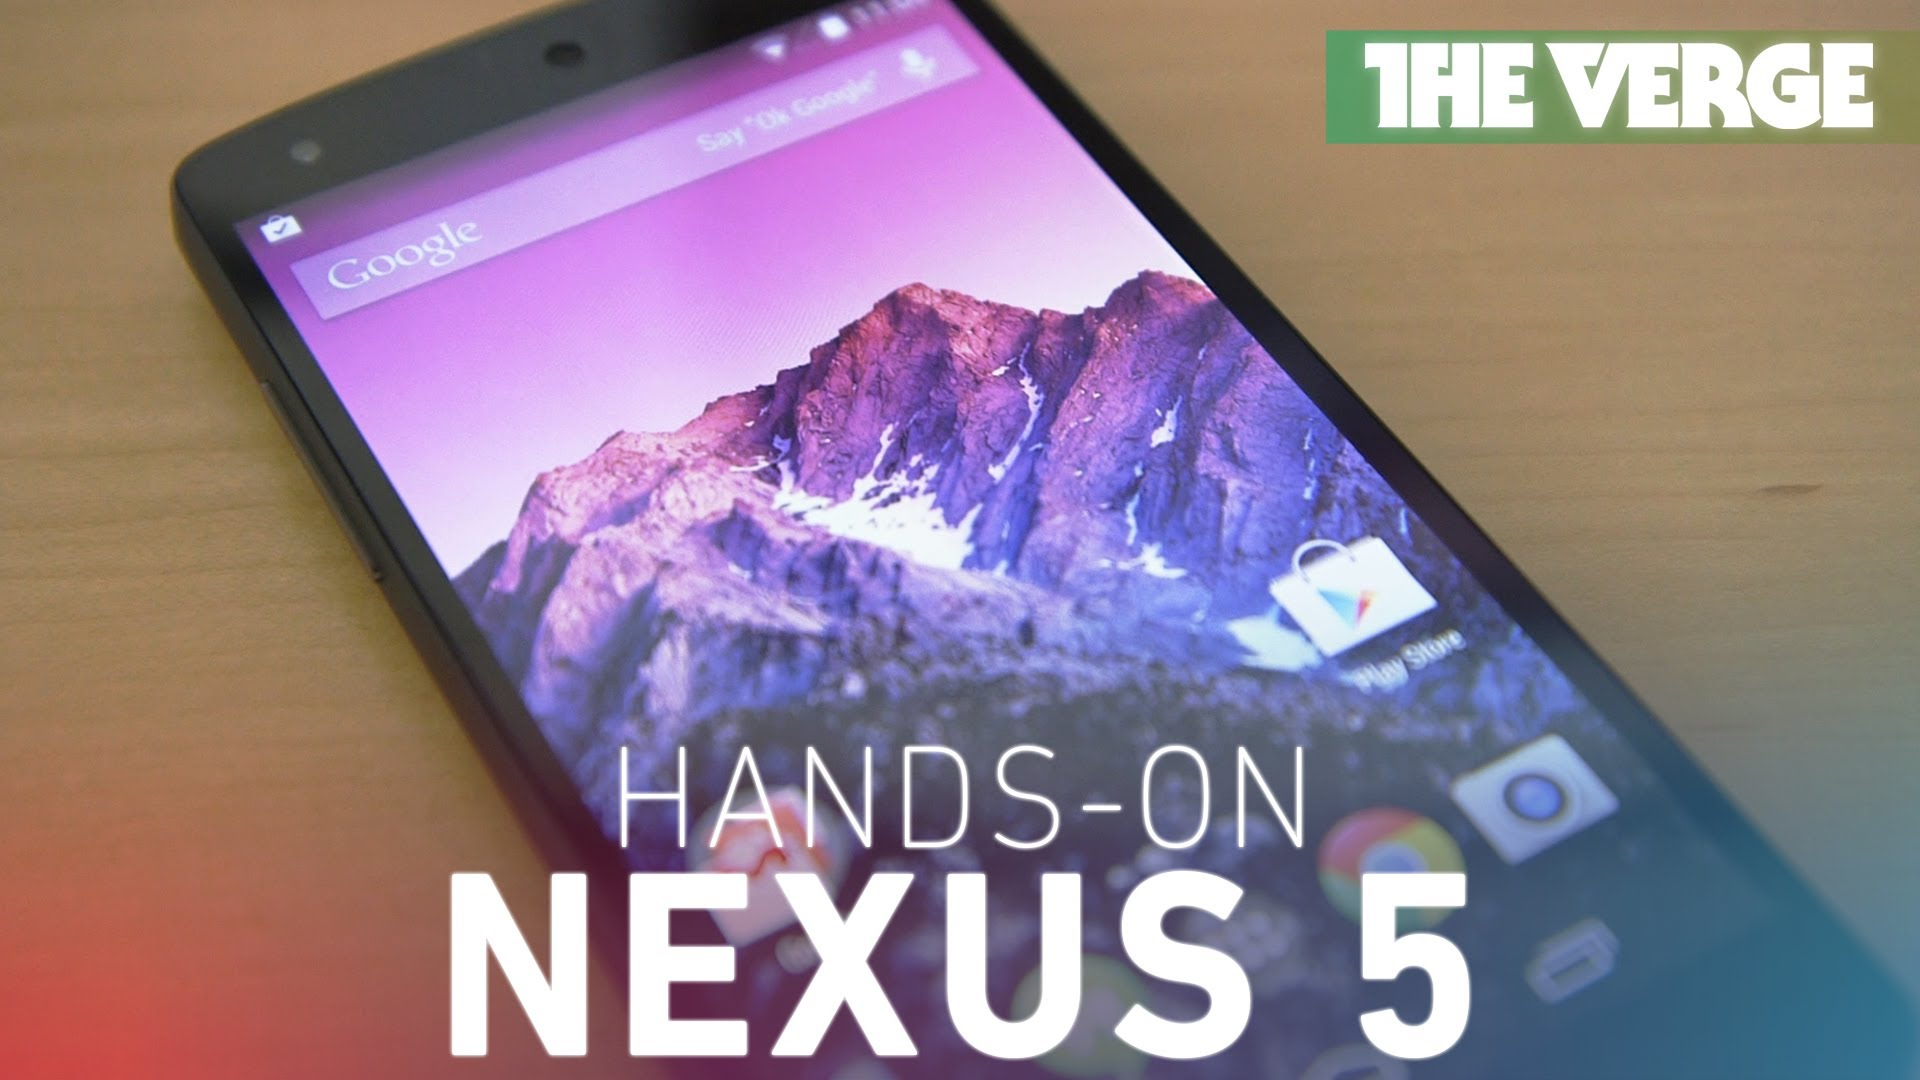 Google a lansat Nexus 5 VIDEO